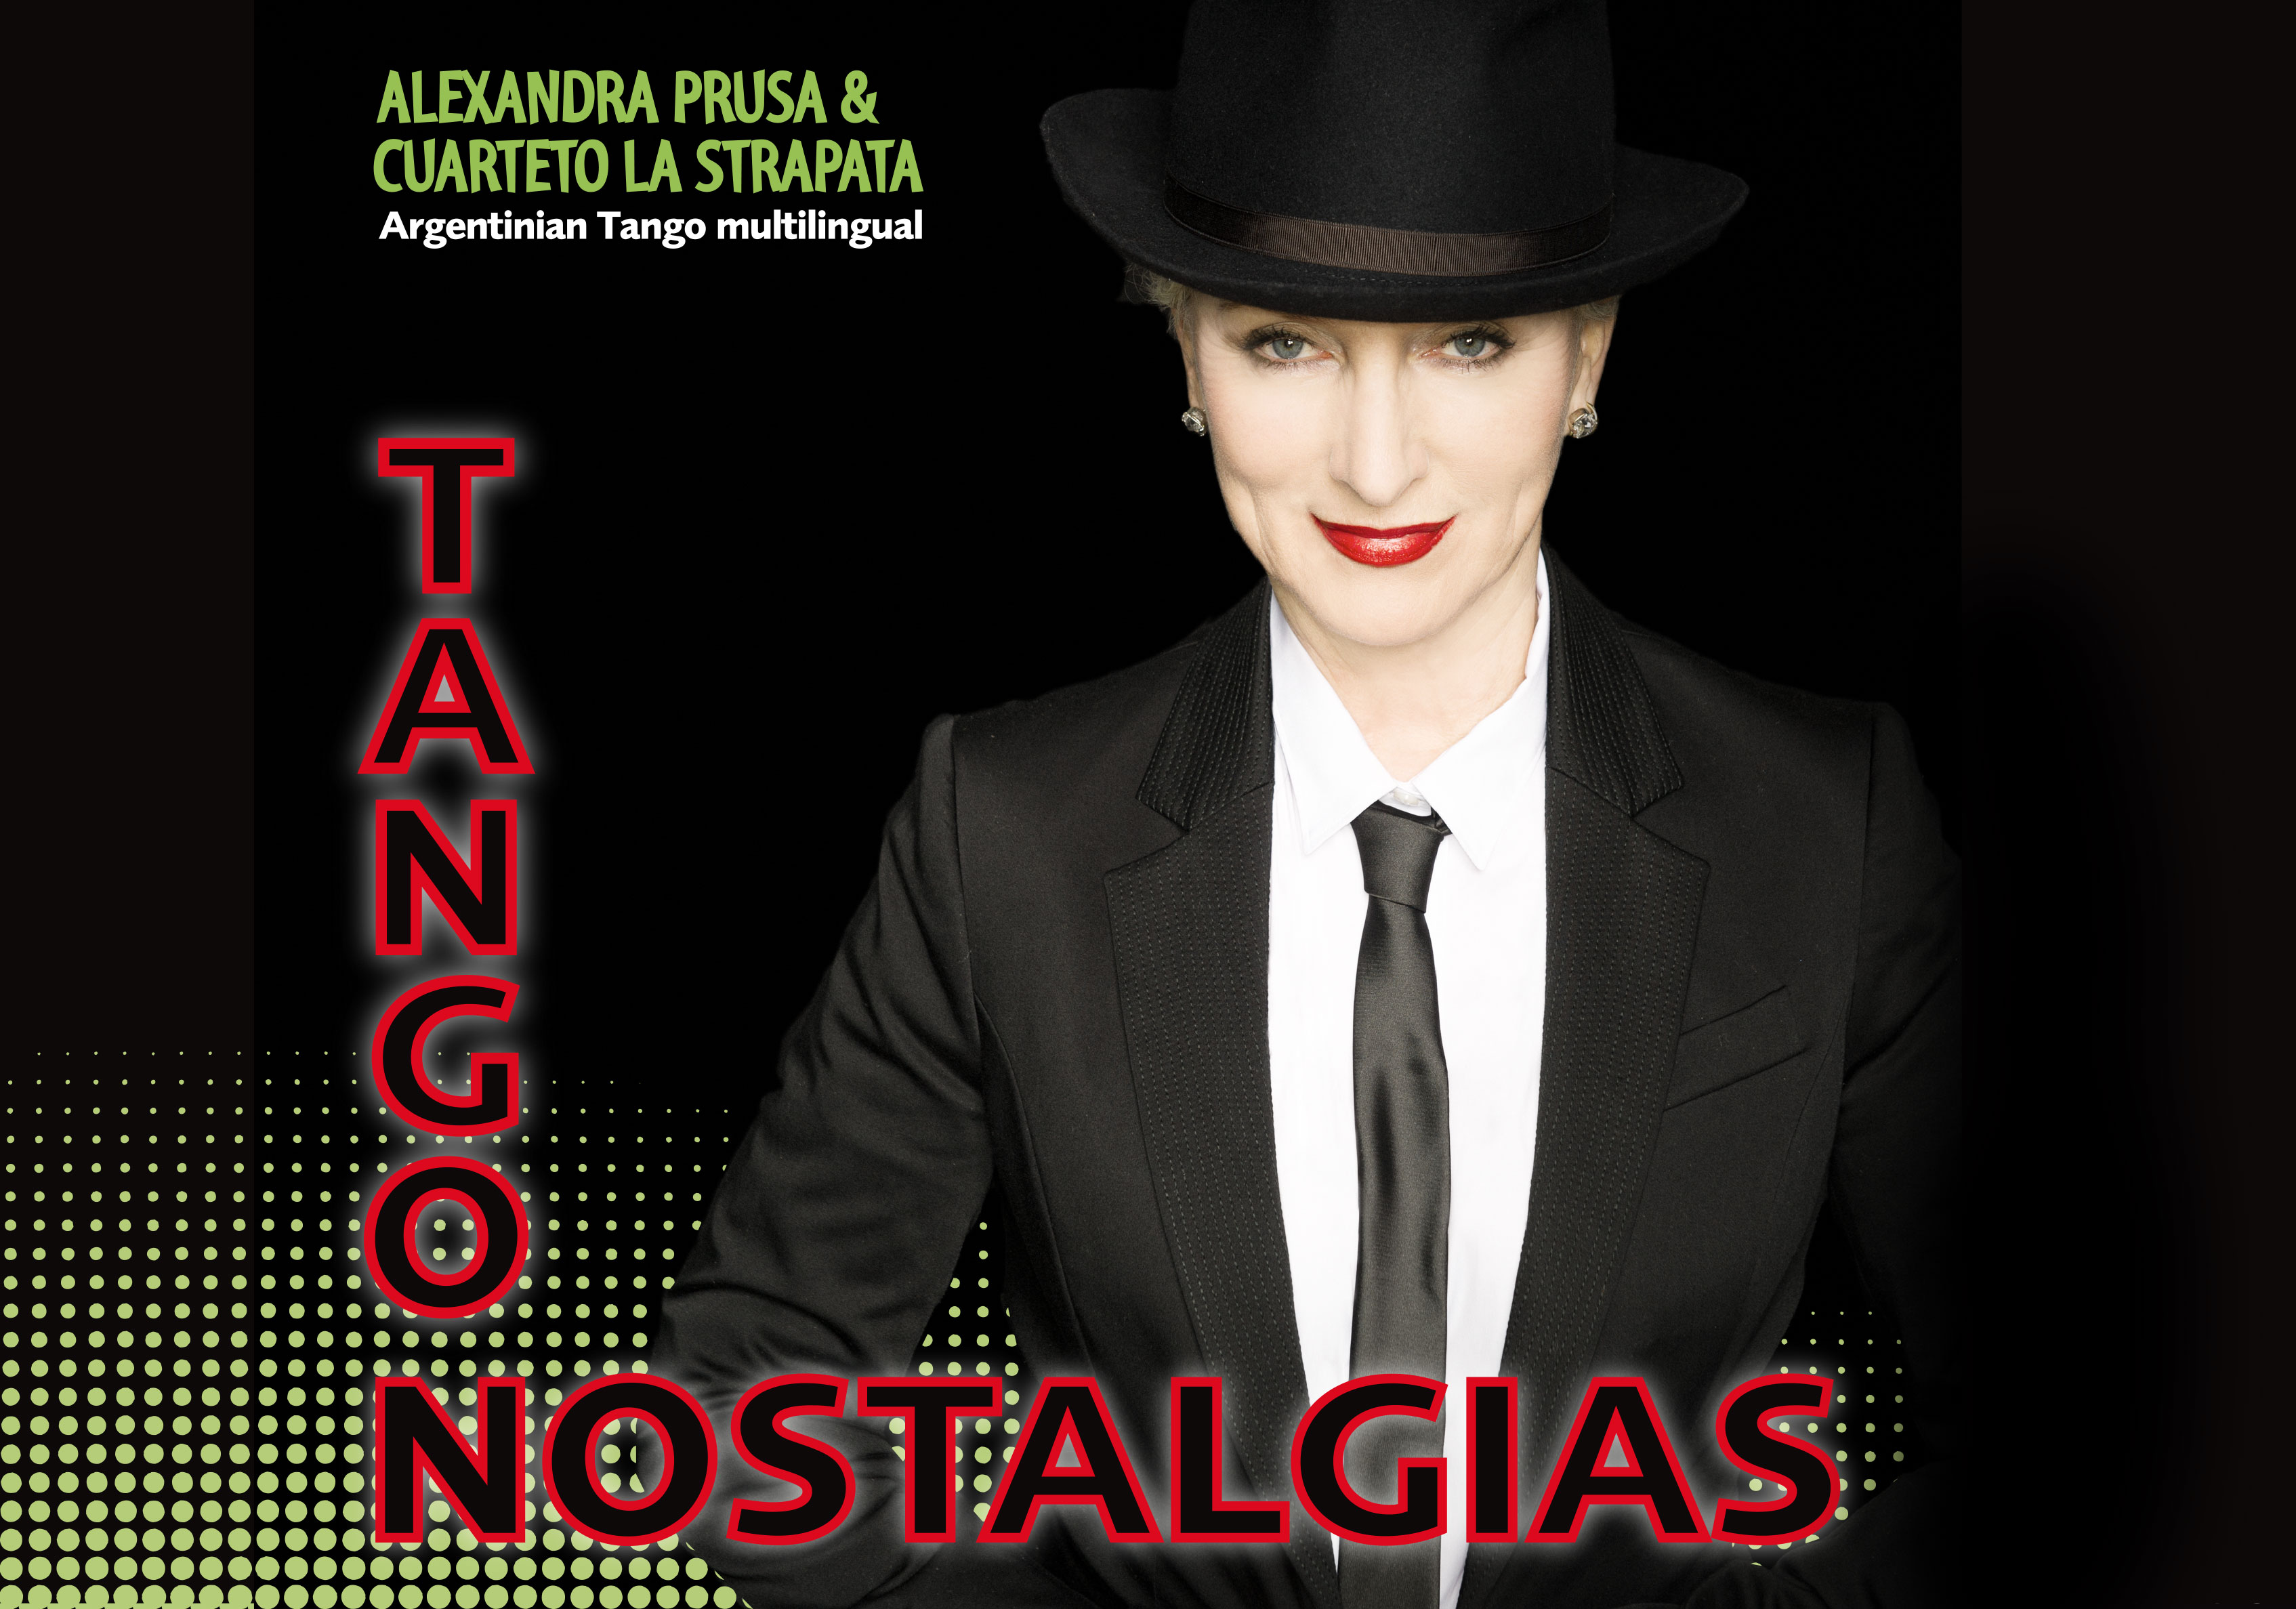 Argentinian Tango Multilingual, Alexandra Prusa & Orchester und Tanzpaar